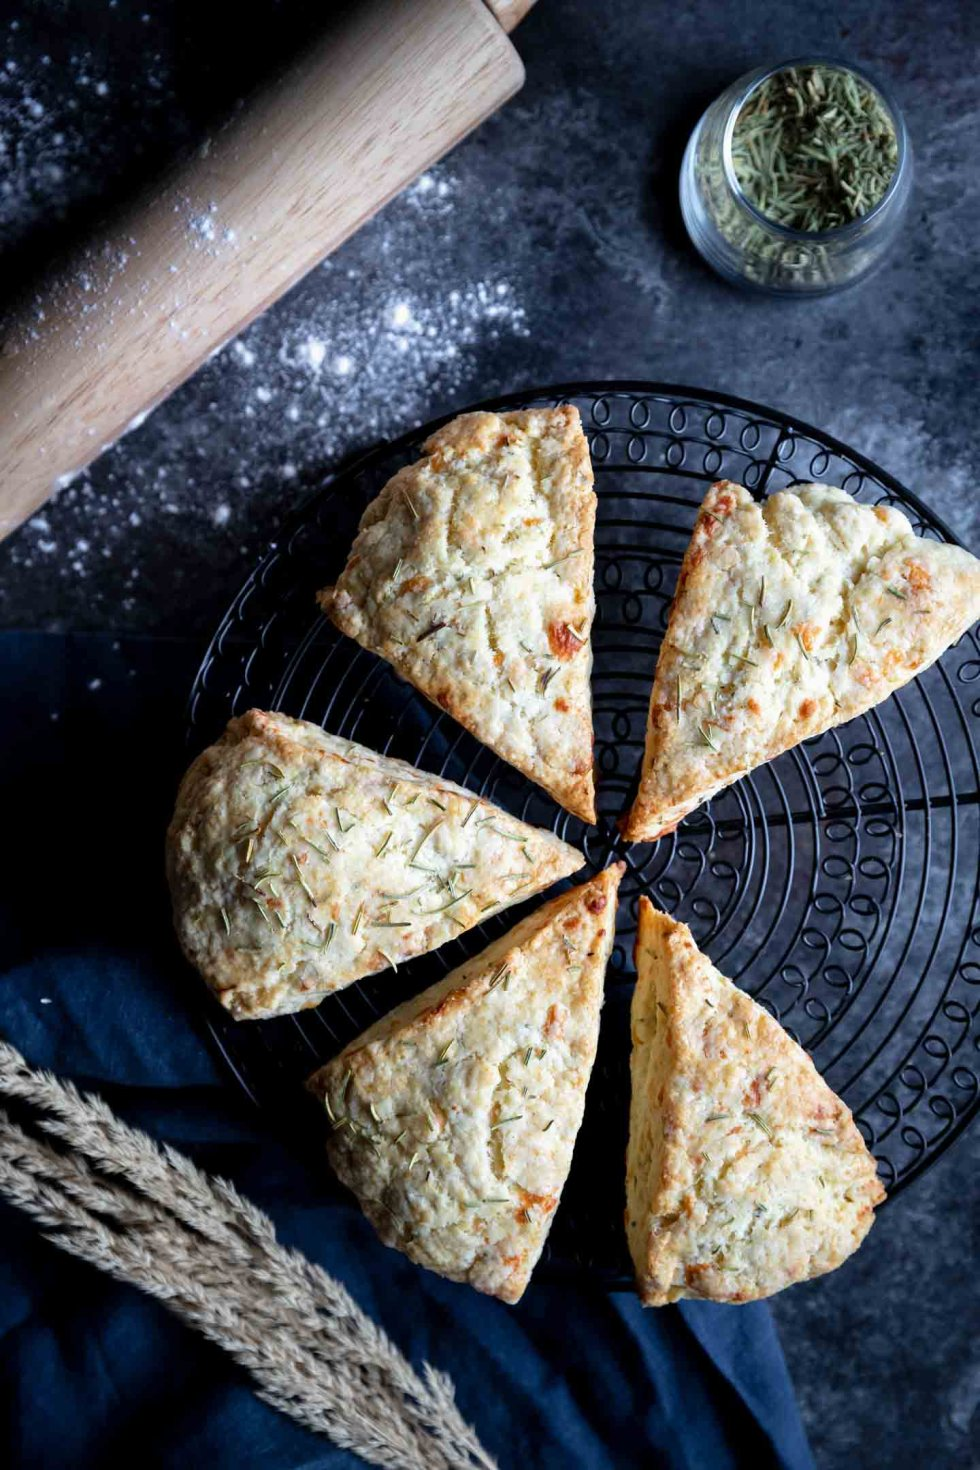 Browned rosemary parmesan scones on a black cooling rack.